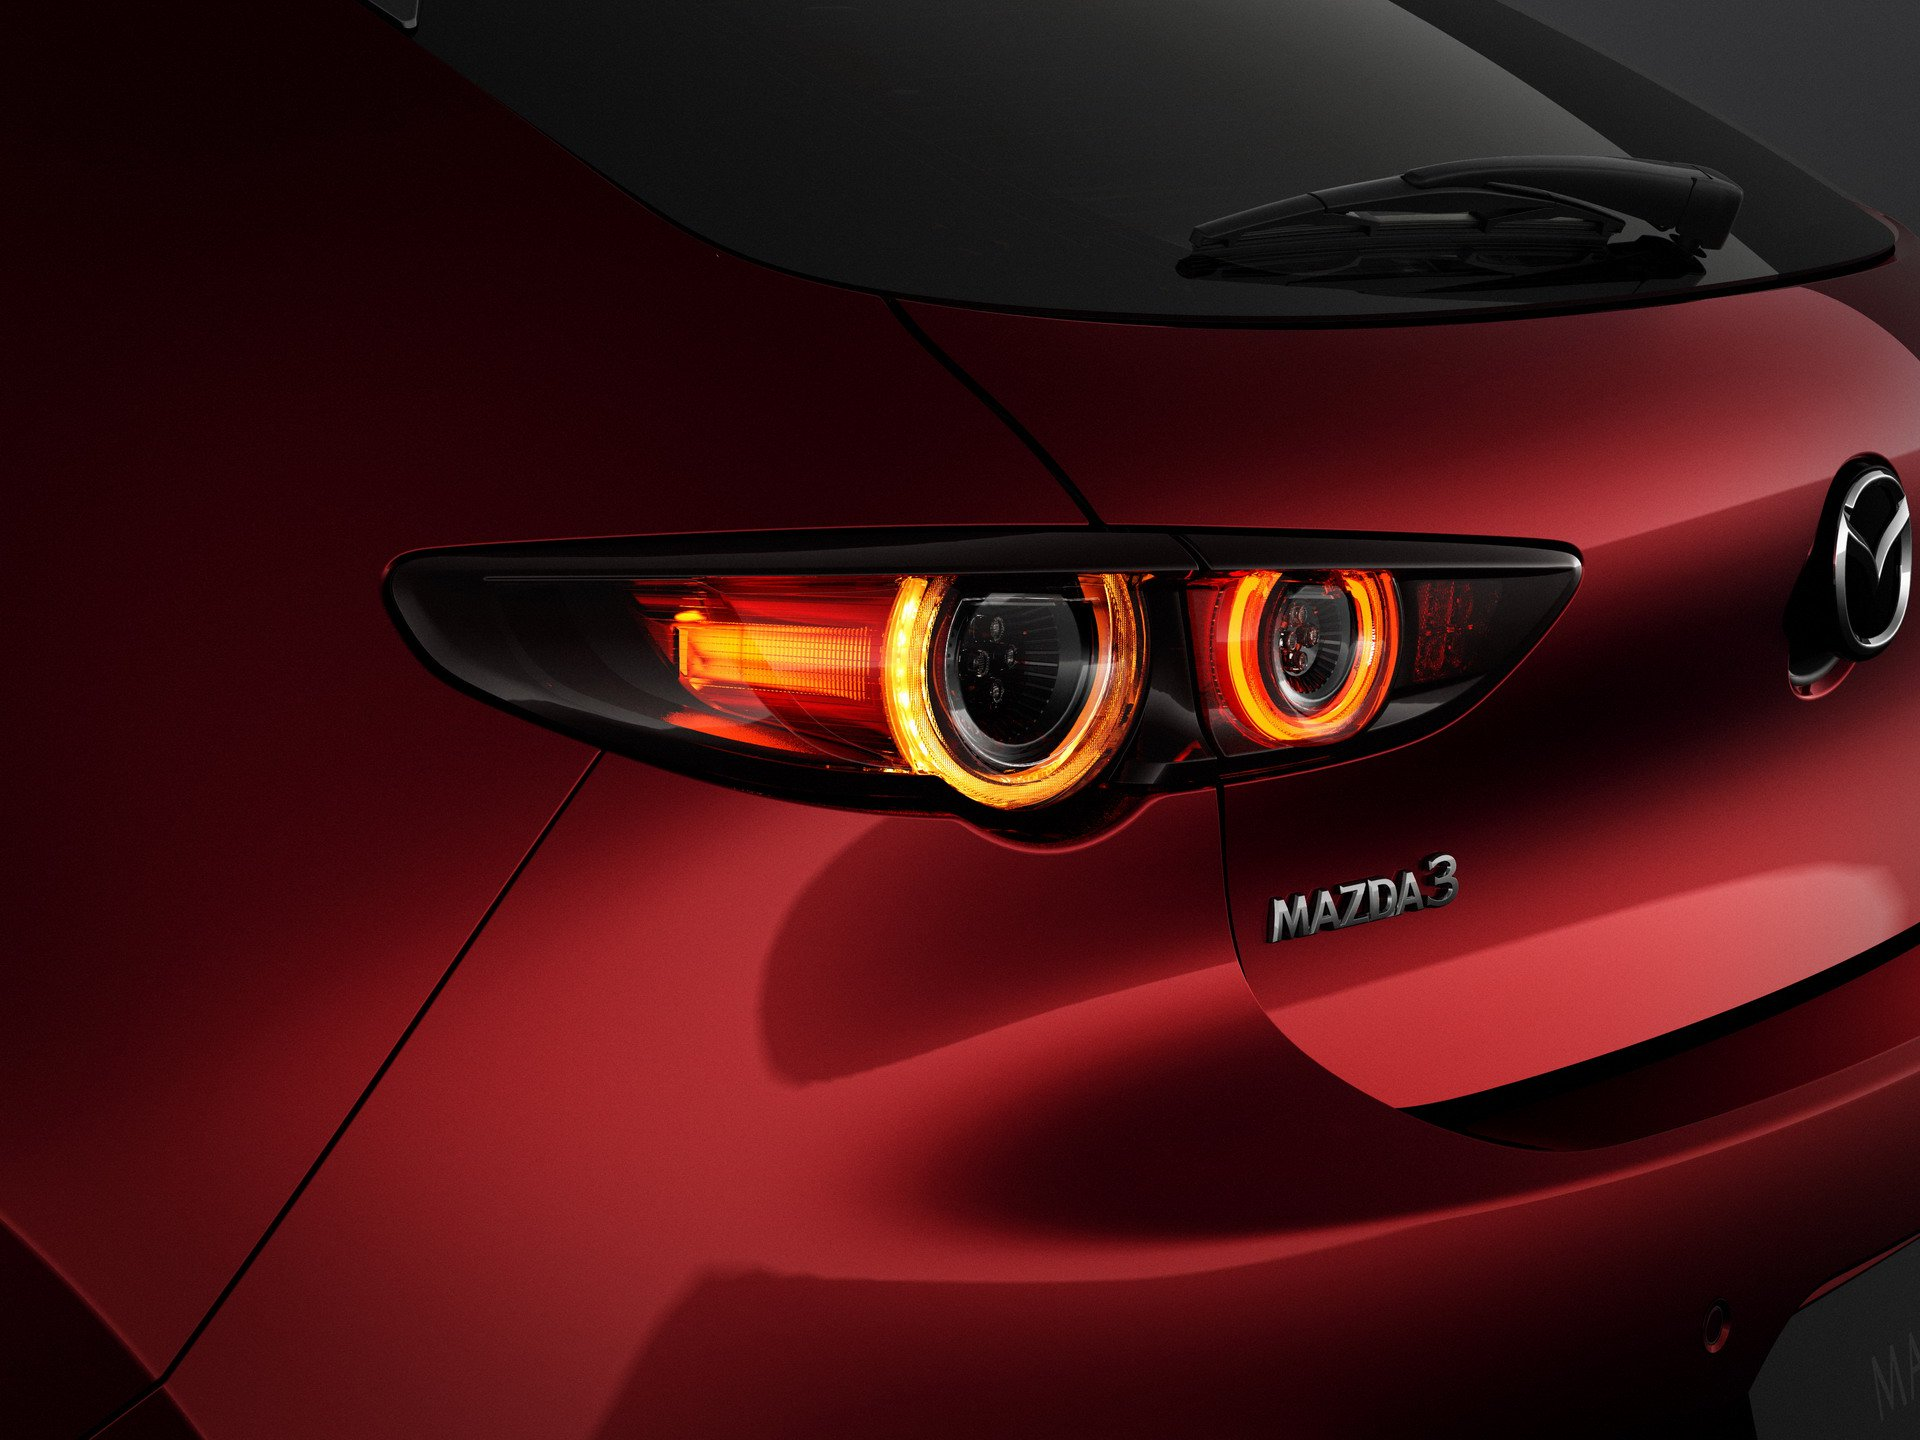 Mazda3 Hatchback and Mazda3 sedan 2019 (7)